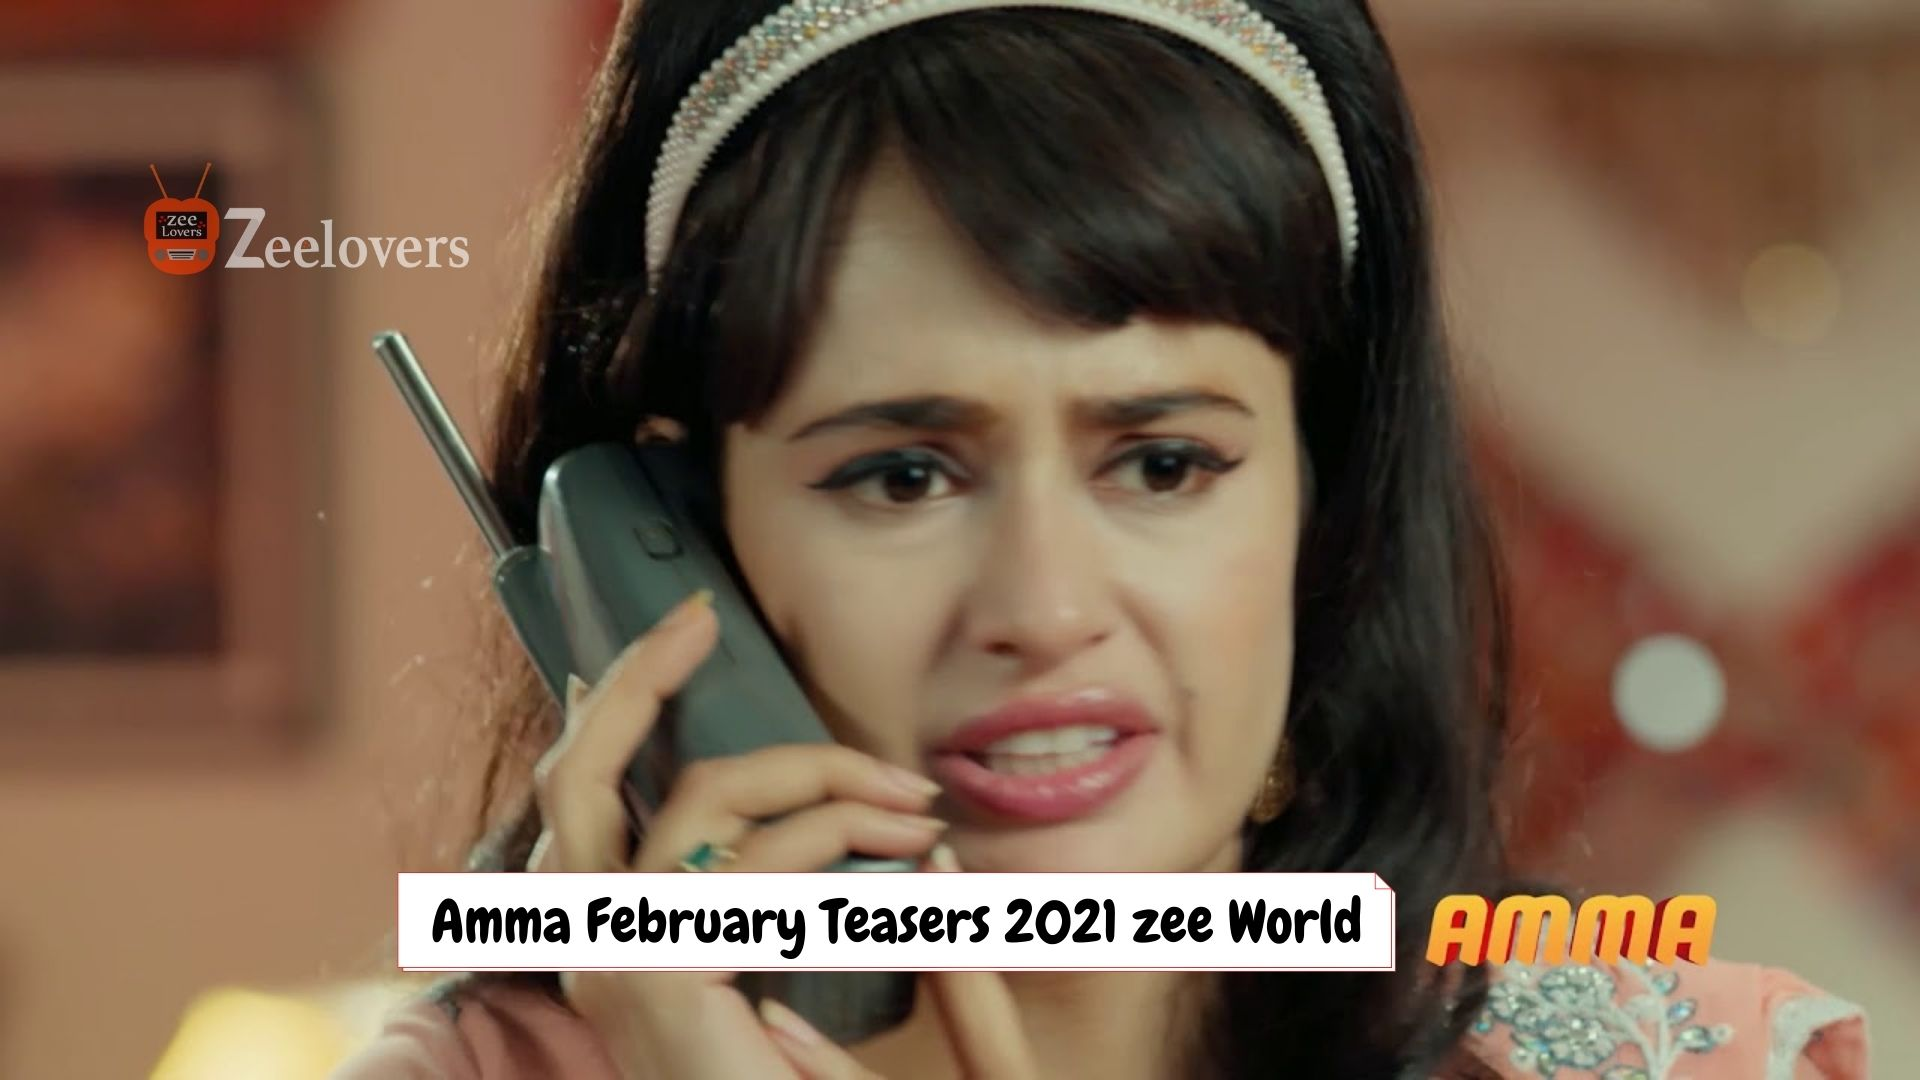 Amma February Teasers 2021 zee World